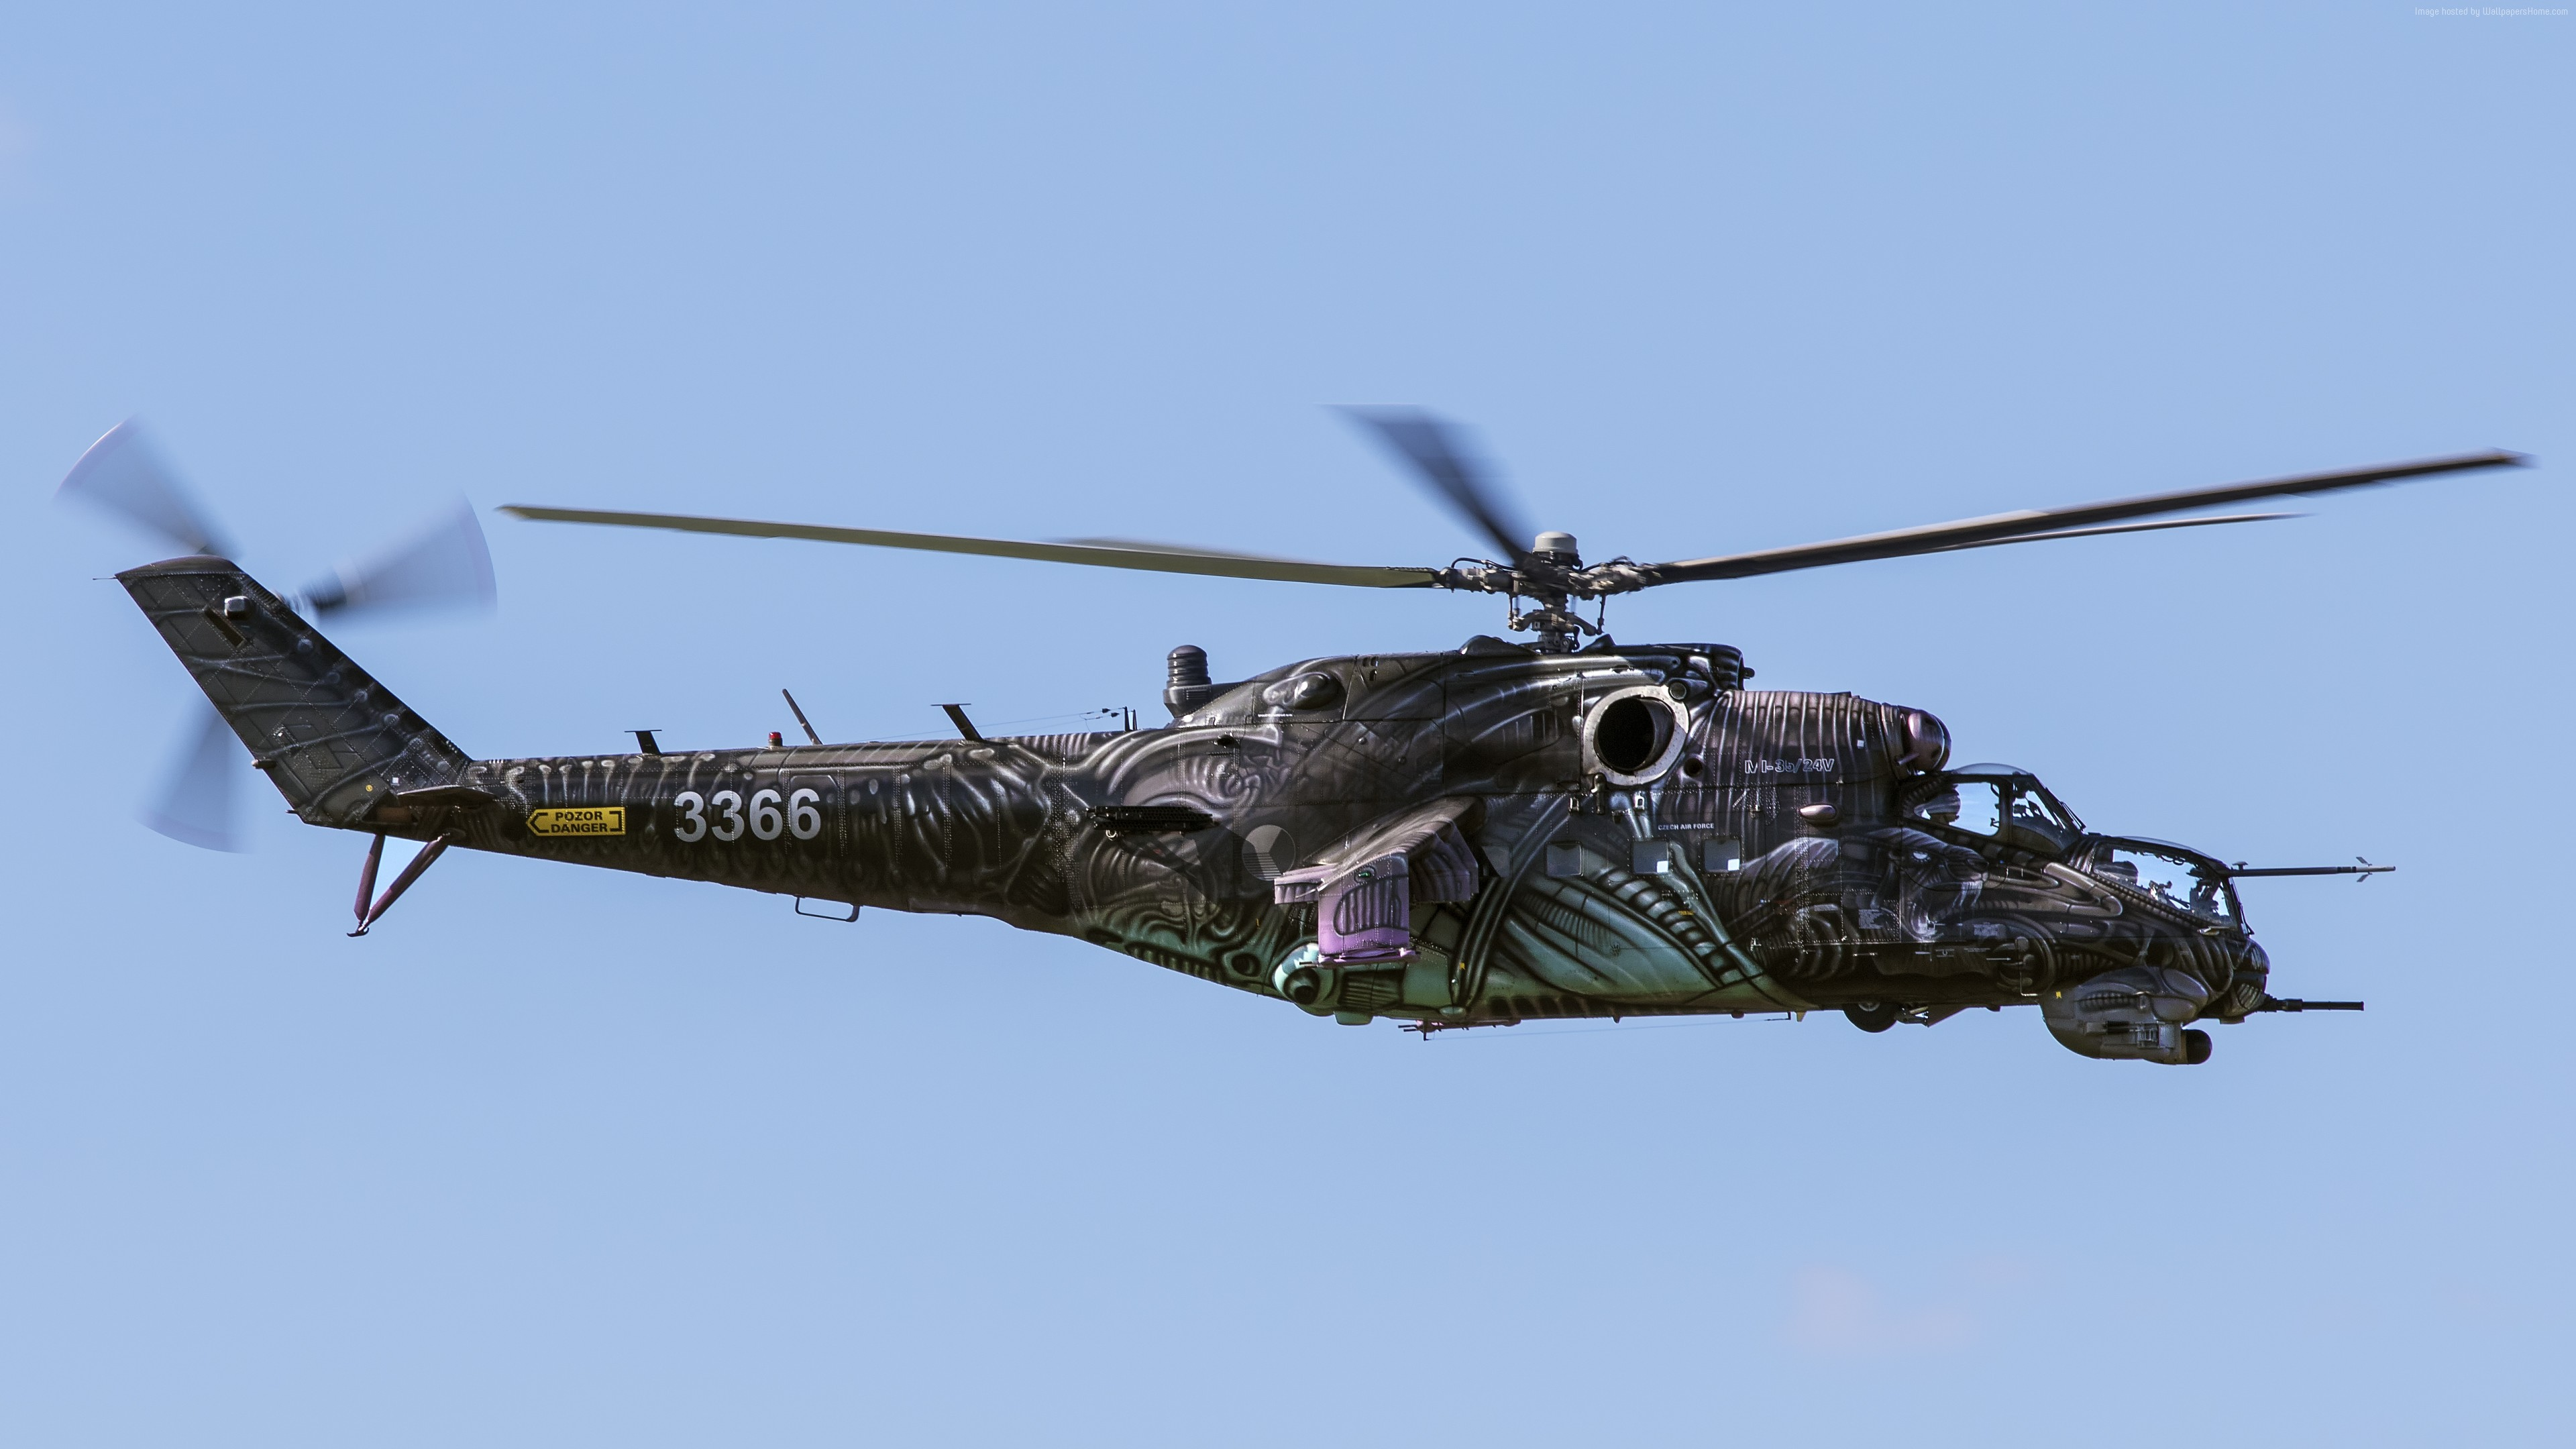 Wallpaper MI-24, Russian army, fighter helicopter, Russian air force, Military